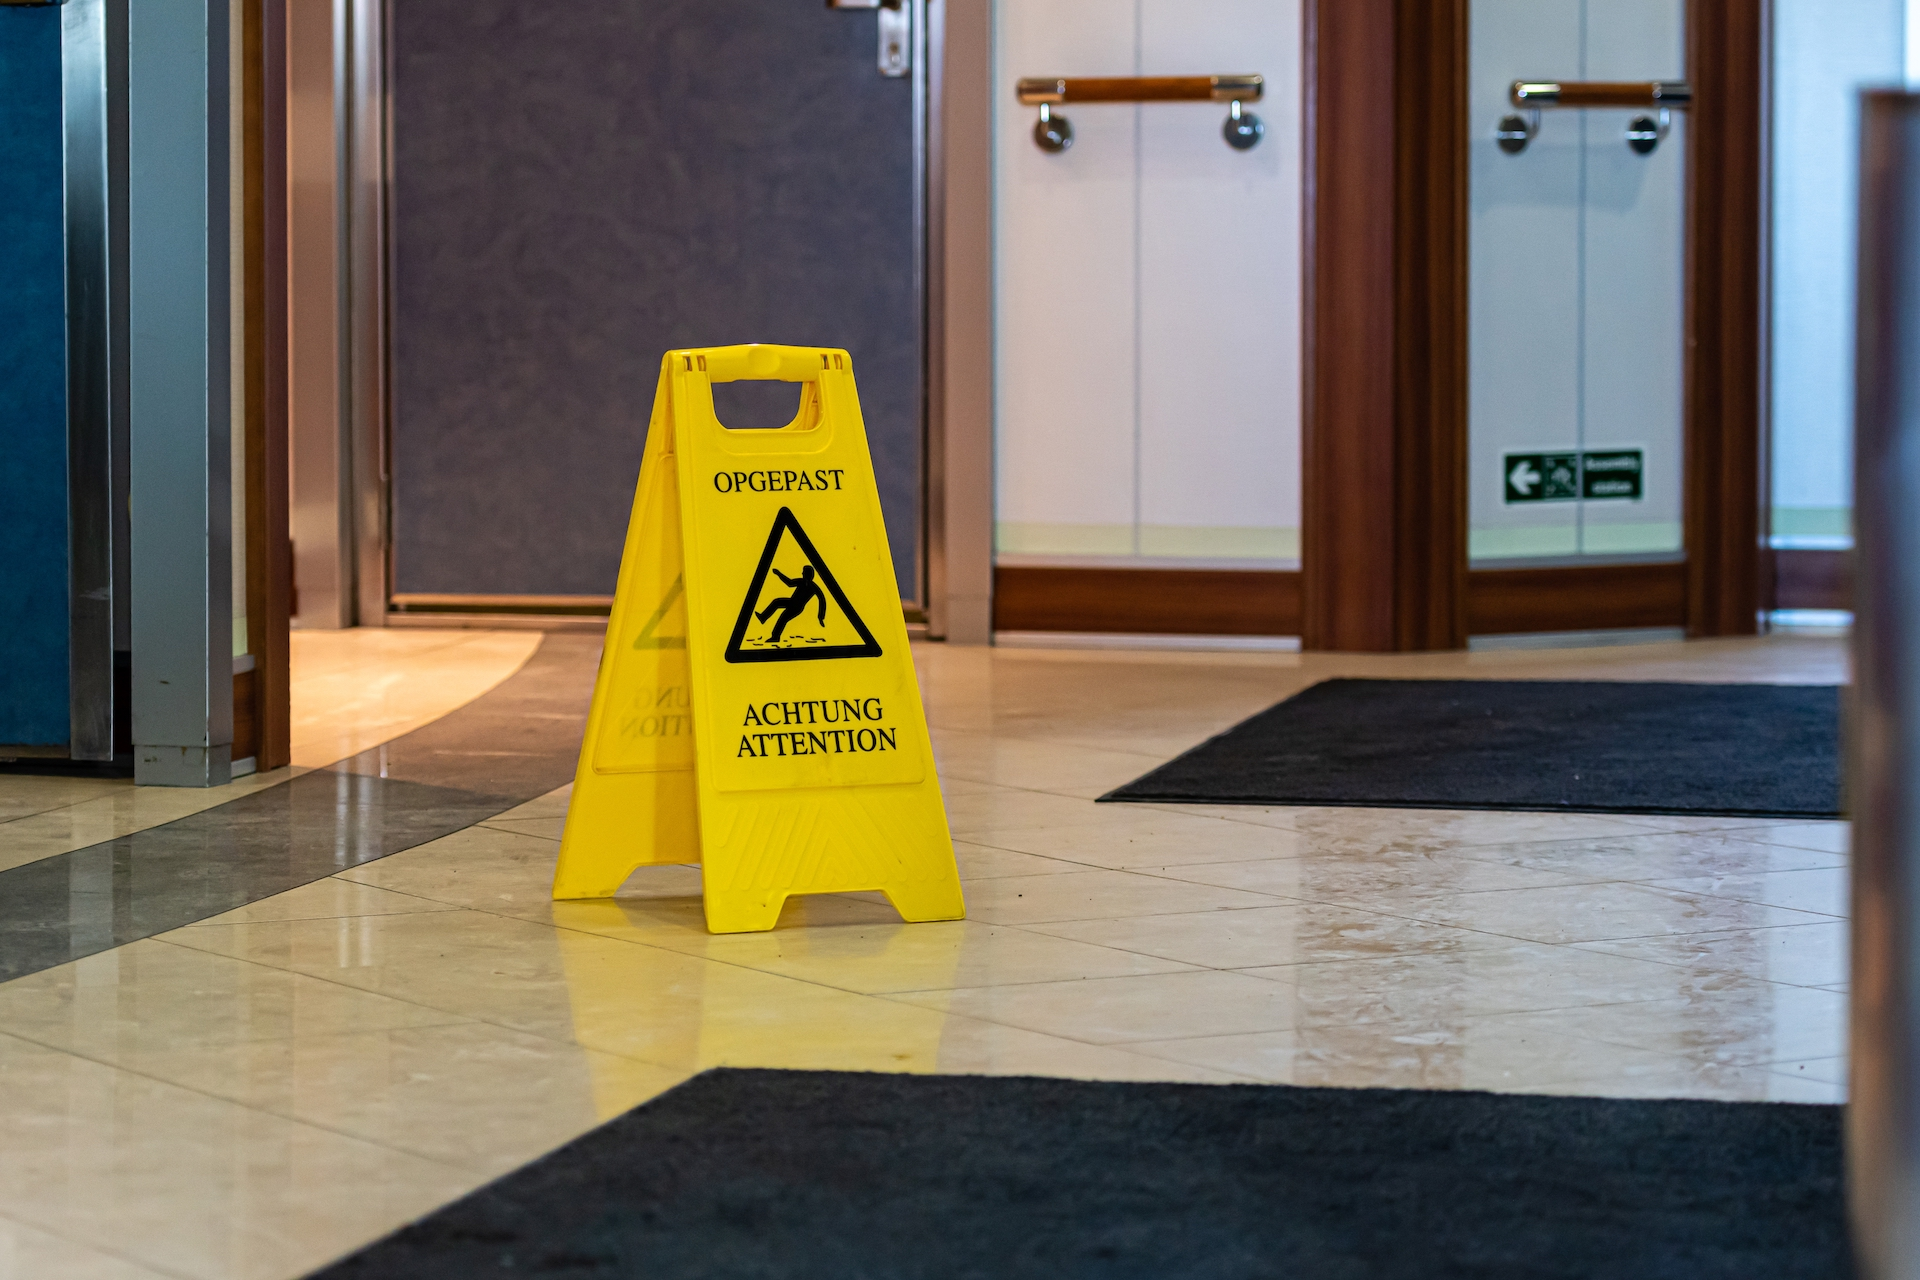 slippery floor warning - Personal Injury Attorney in Nashville - Wrongful Death Attorney, Truck Accident Lawyer, Car Accident Lawyer, and more | Meyers Injury Law